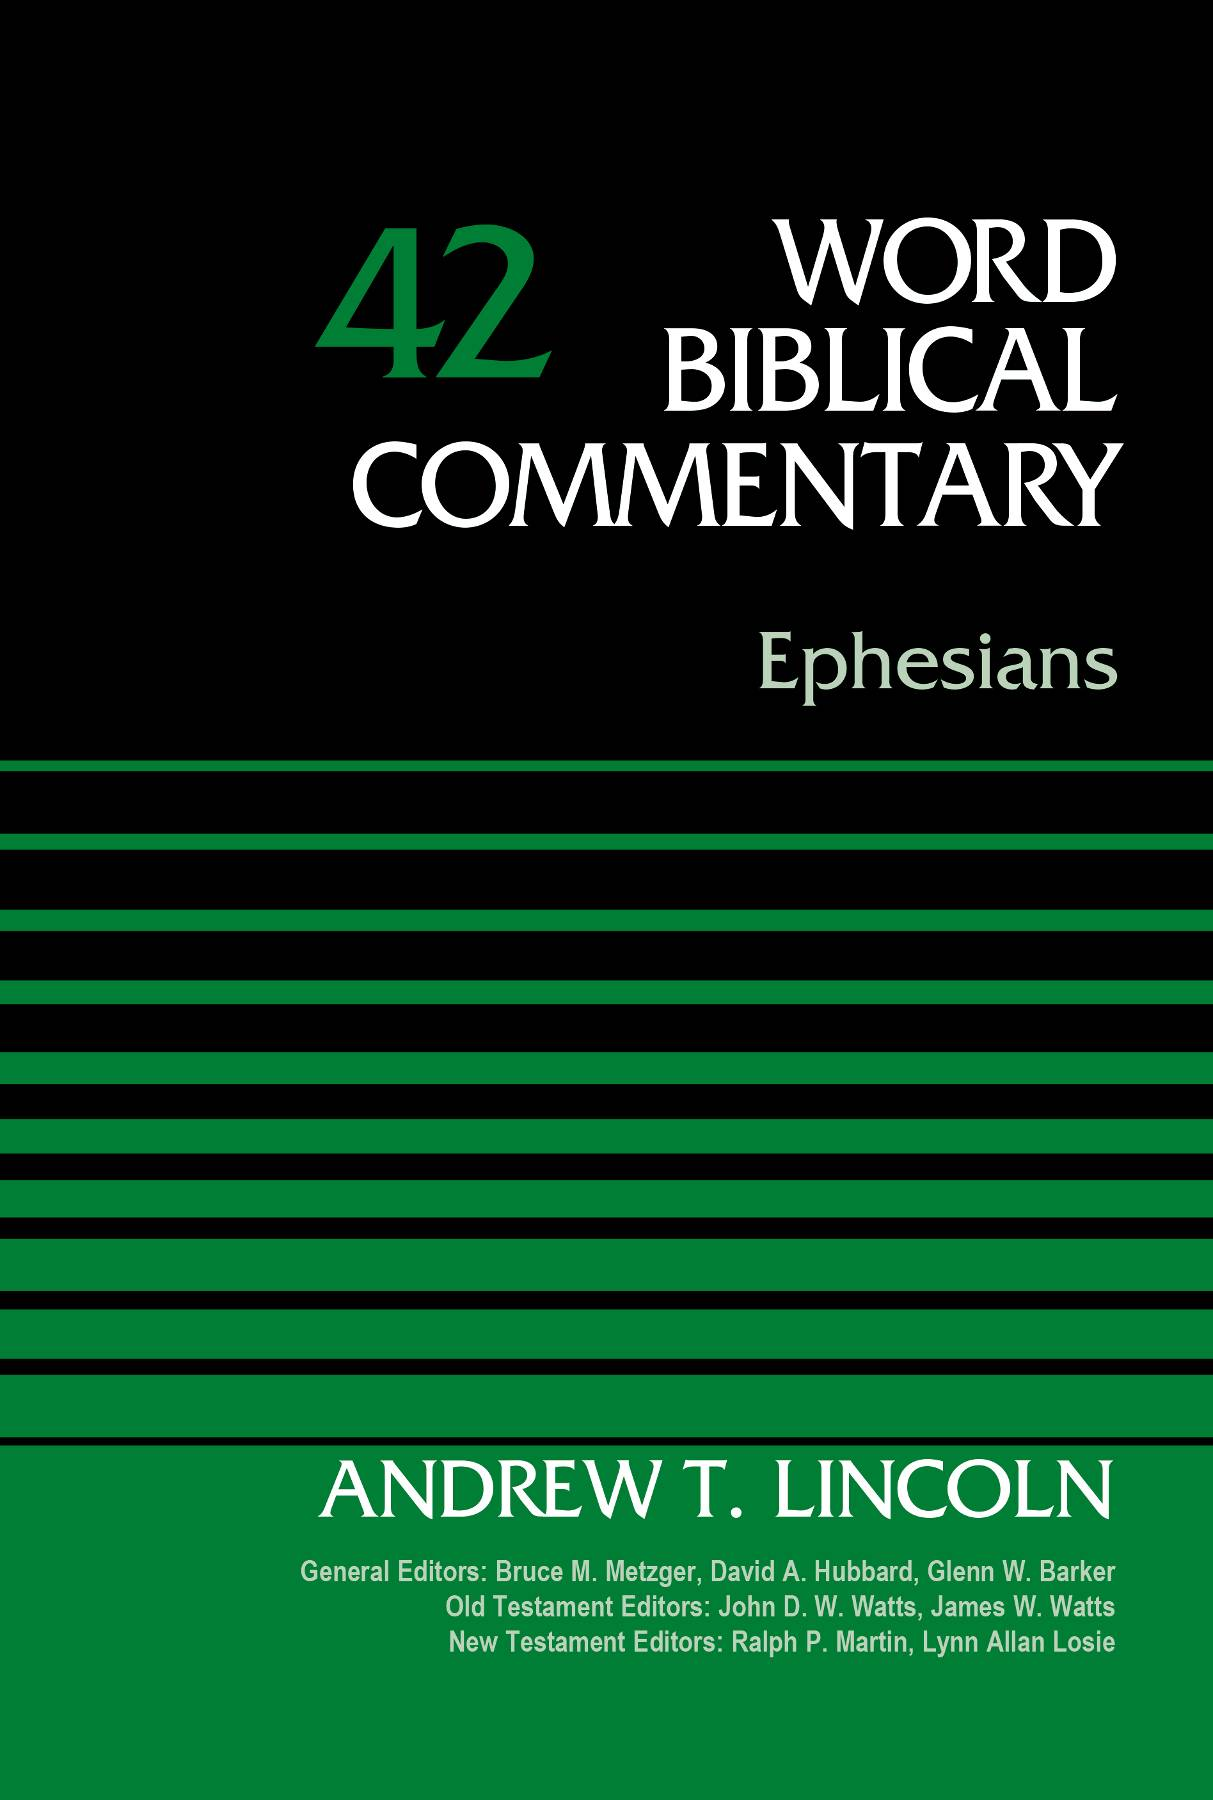 Ephesians, Volume 42 (Word Biblical Commentary)